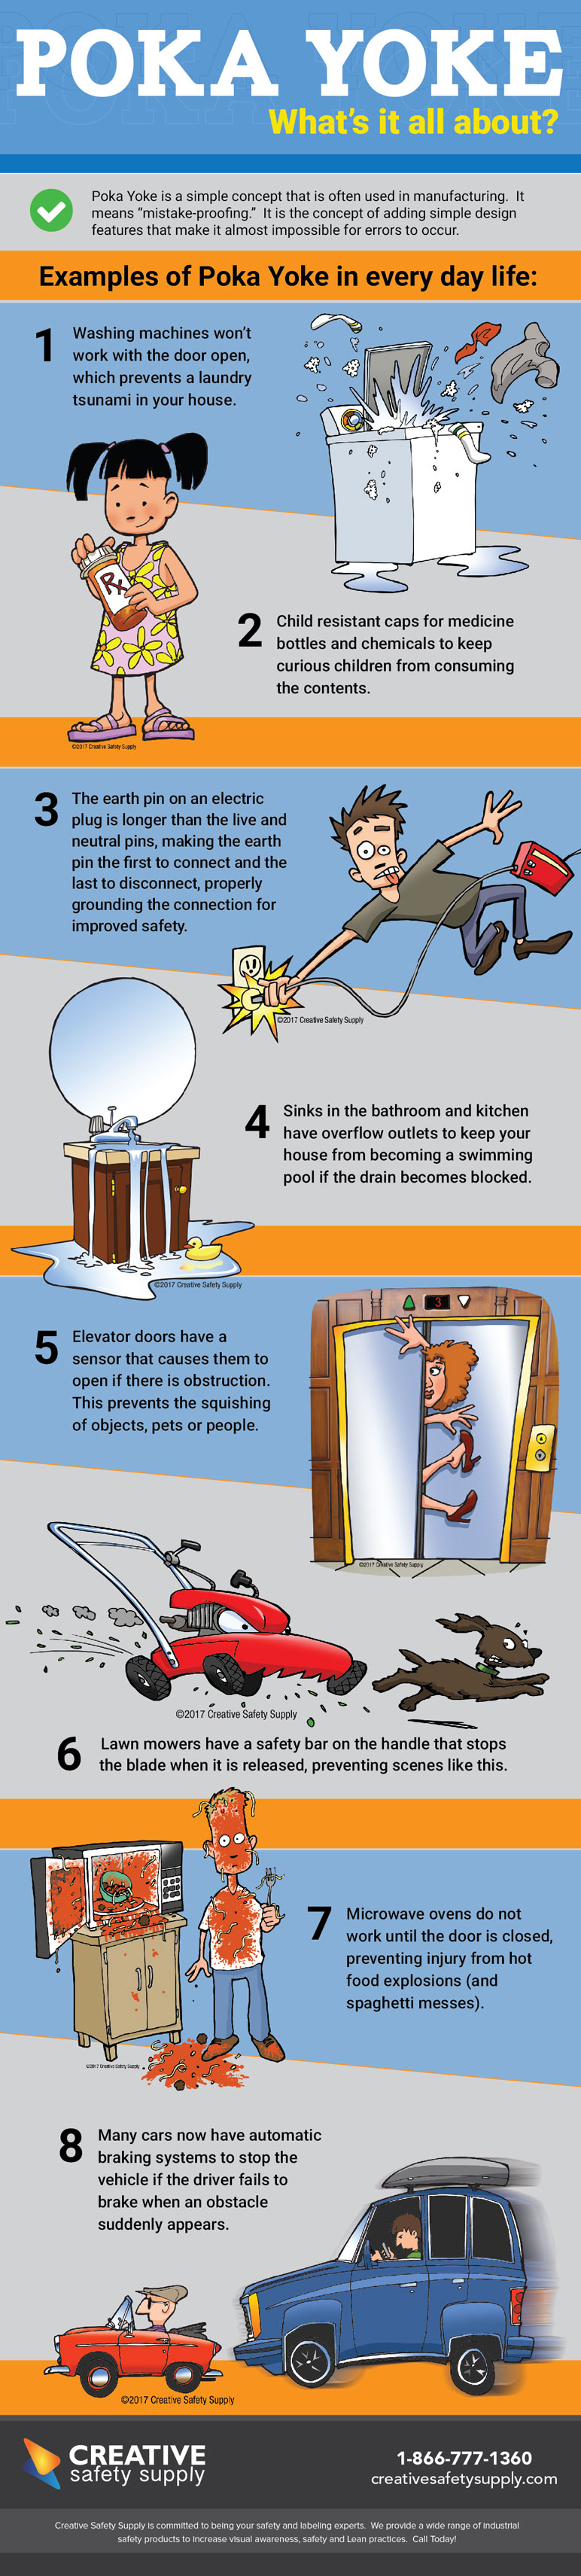 What Is Poka Yoke? - Infographic